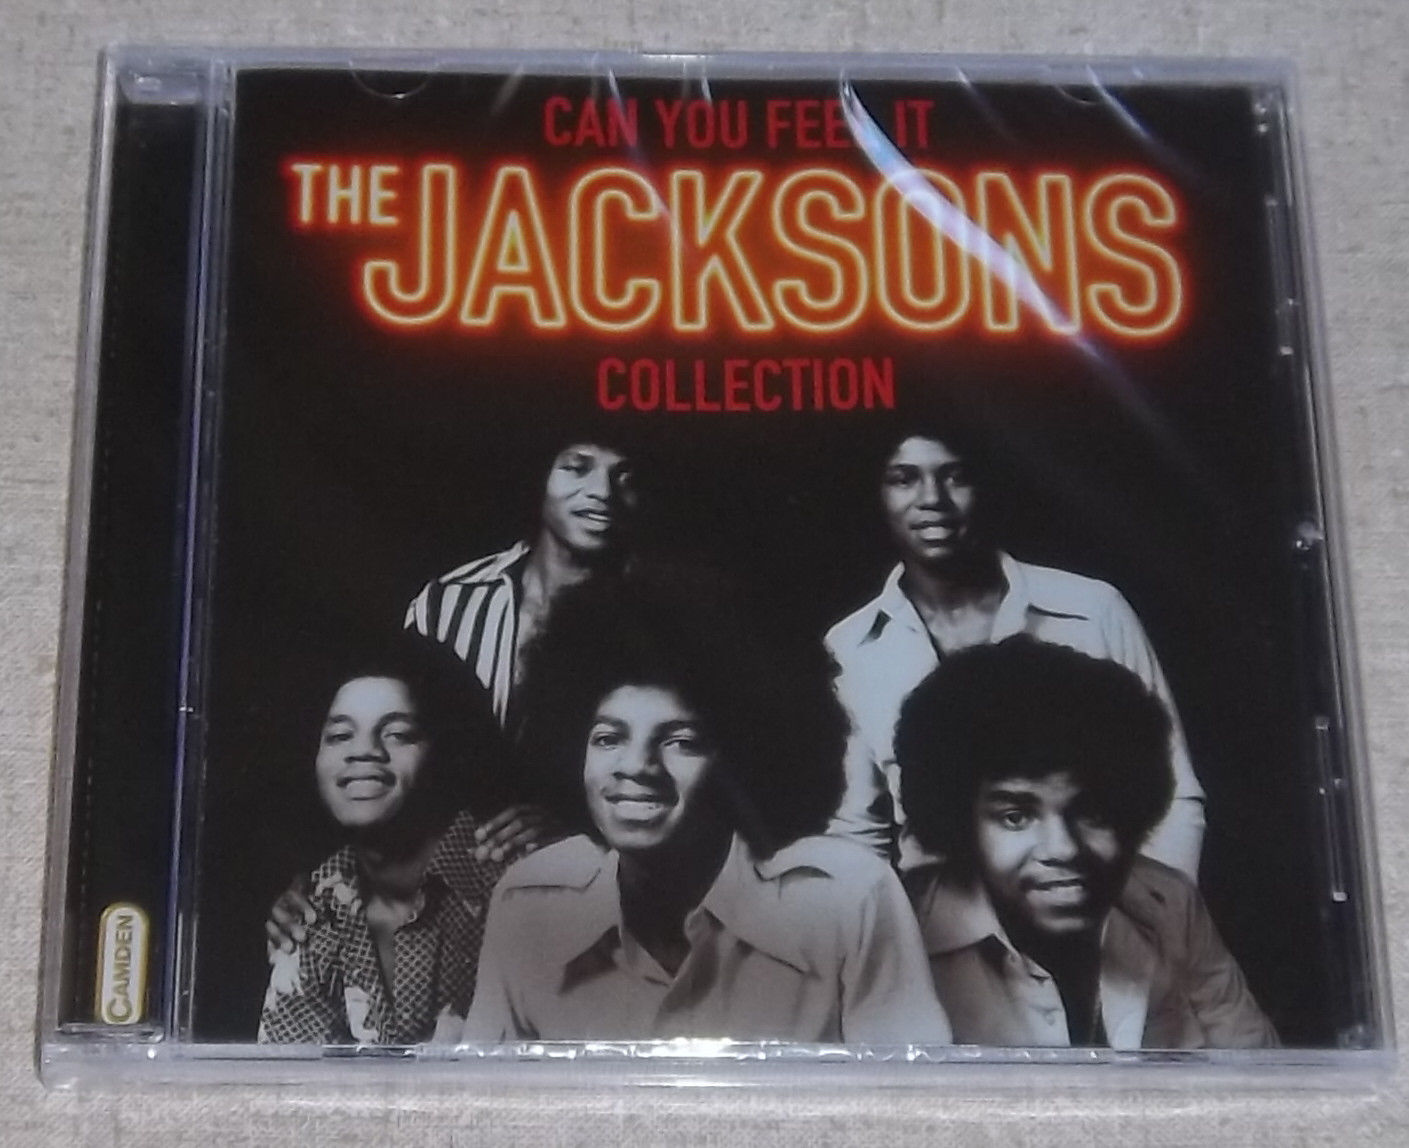 Jacksons, The - Can You Feel It